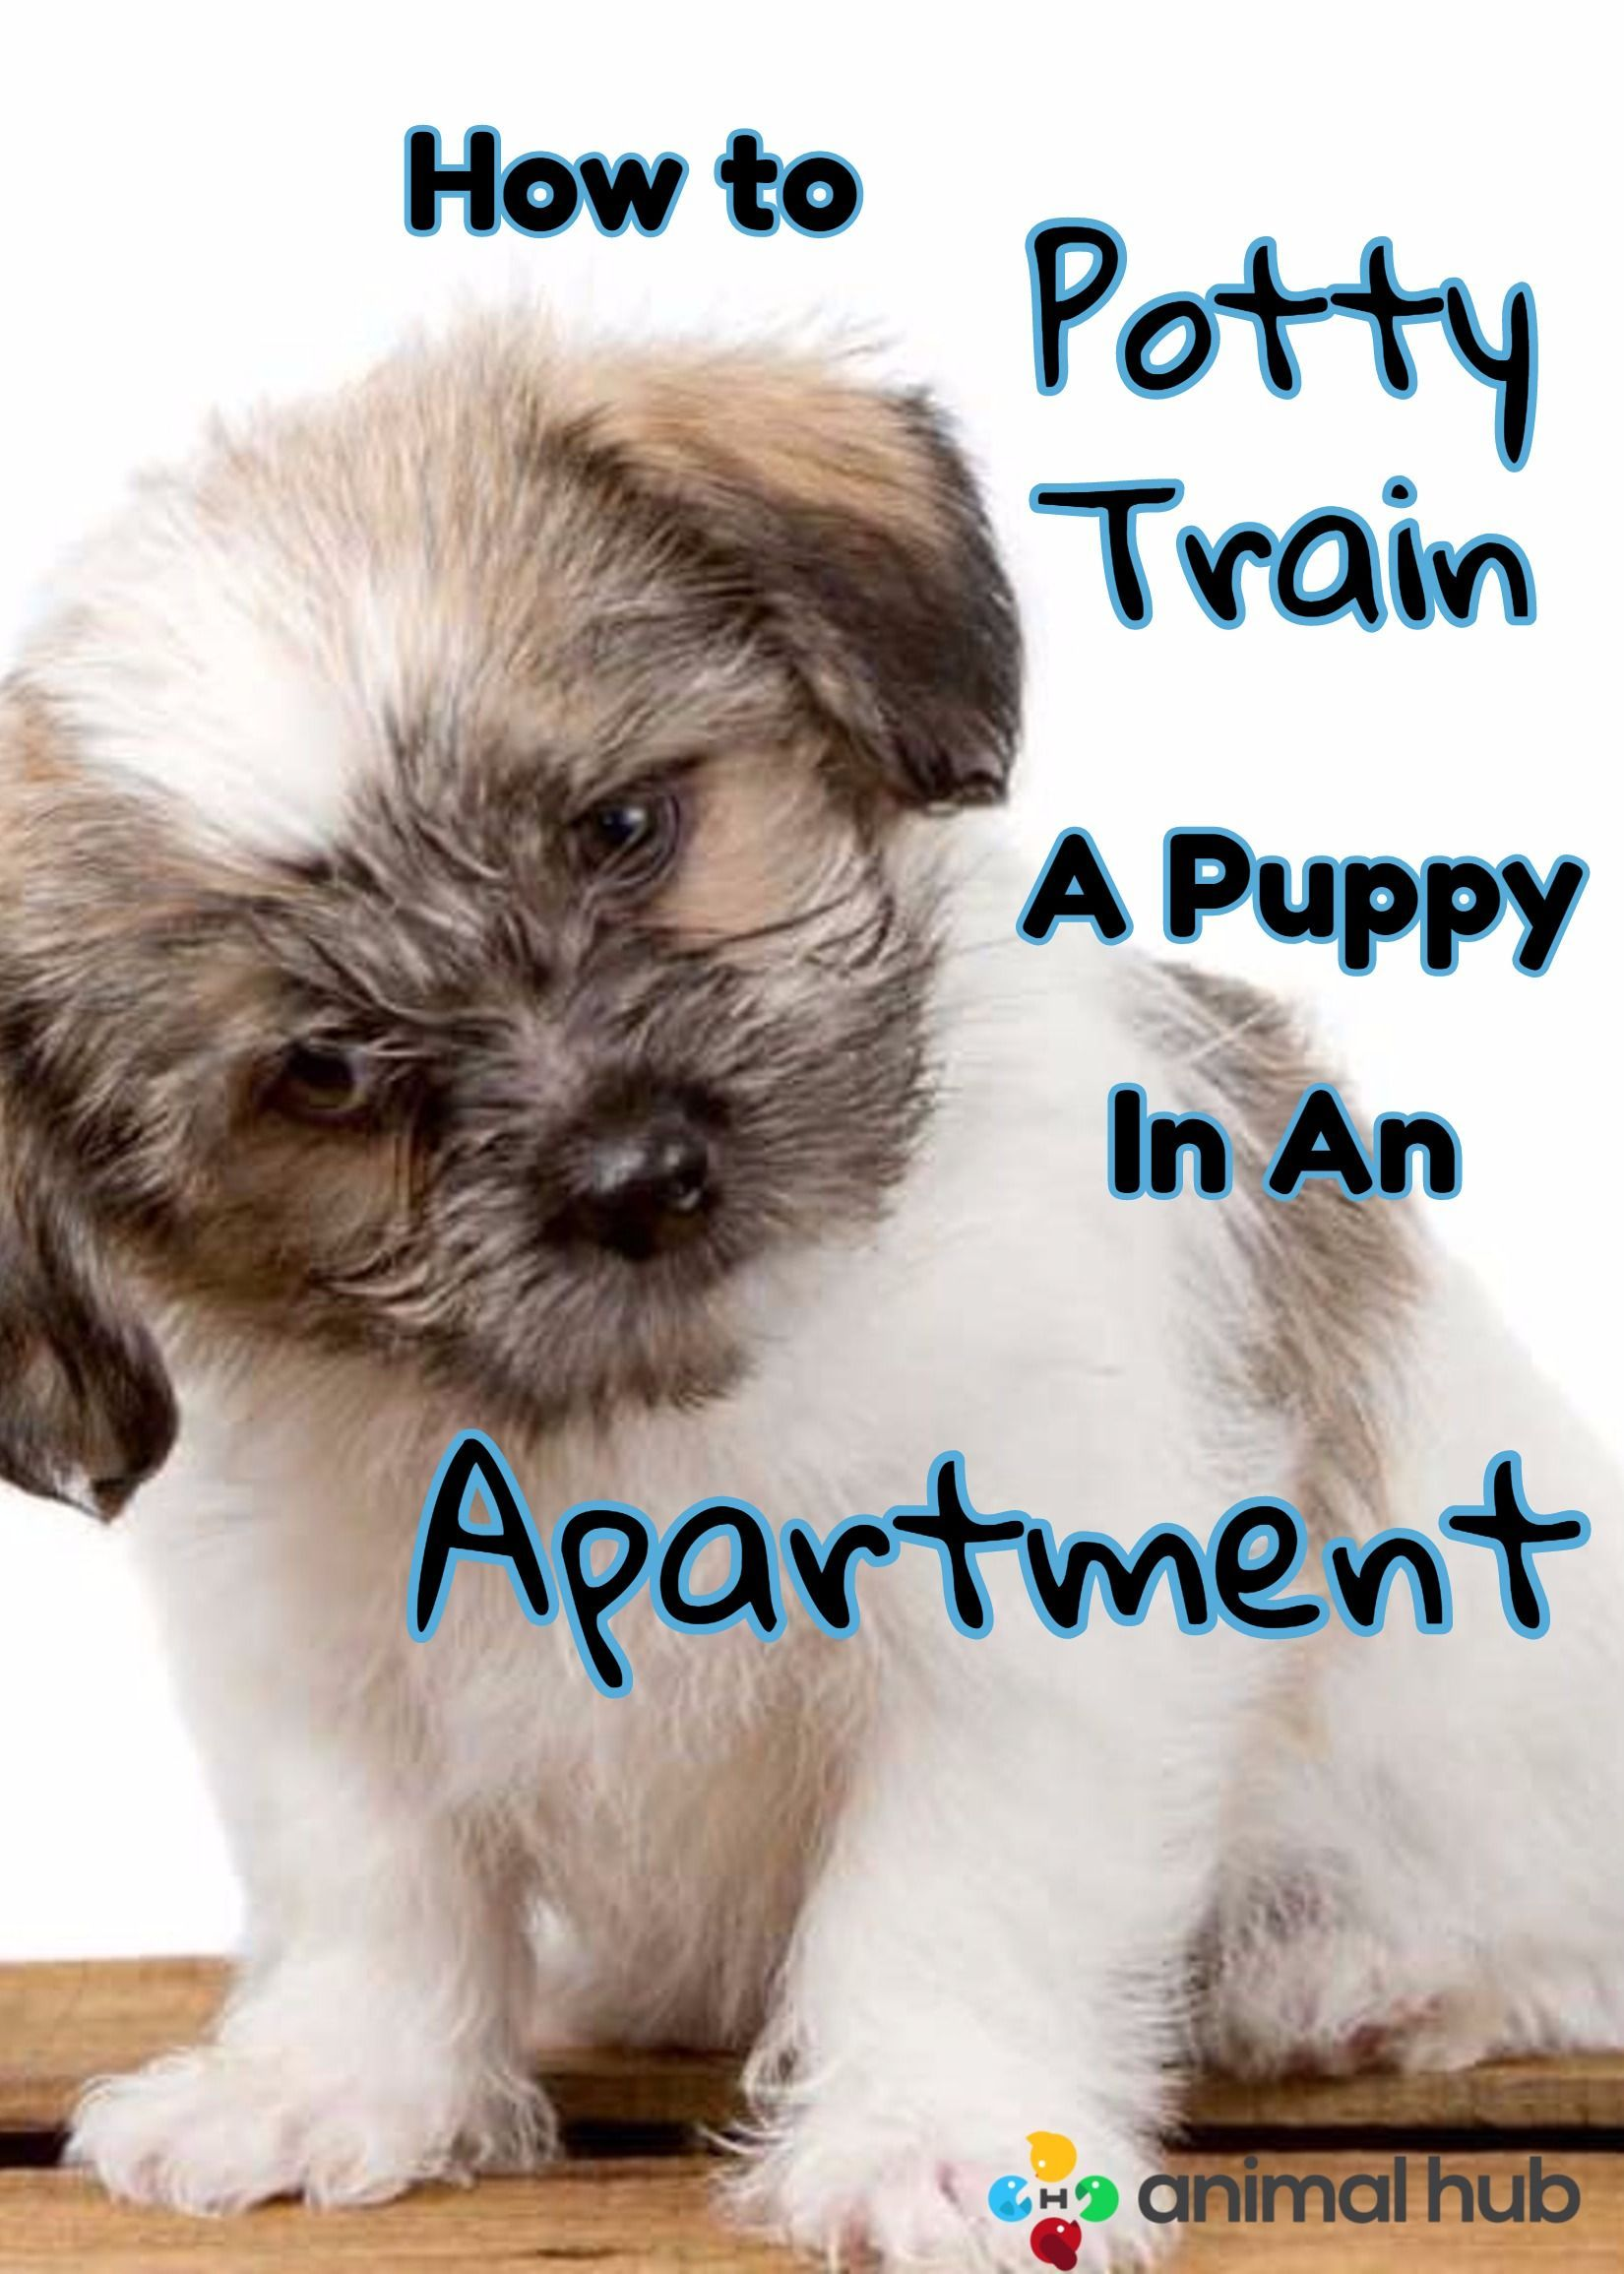 How To Potty Train A Puppy In An Apartment Animal Hub Https